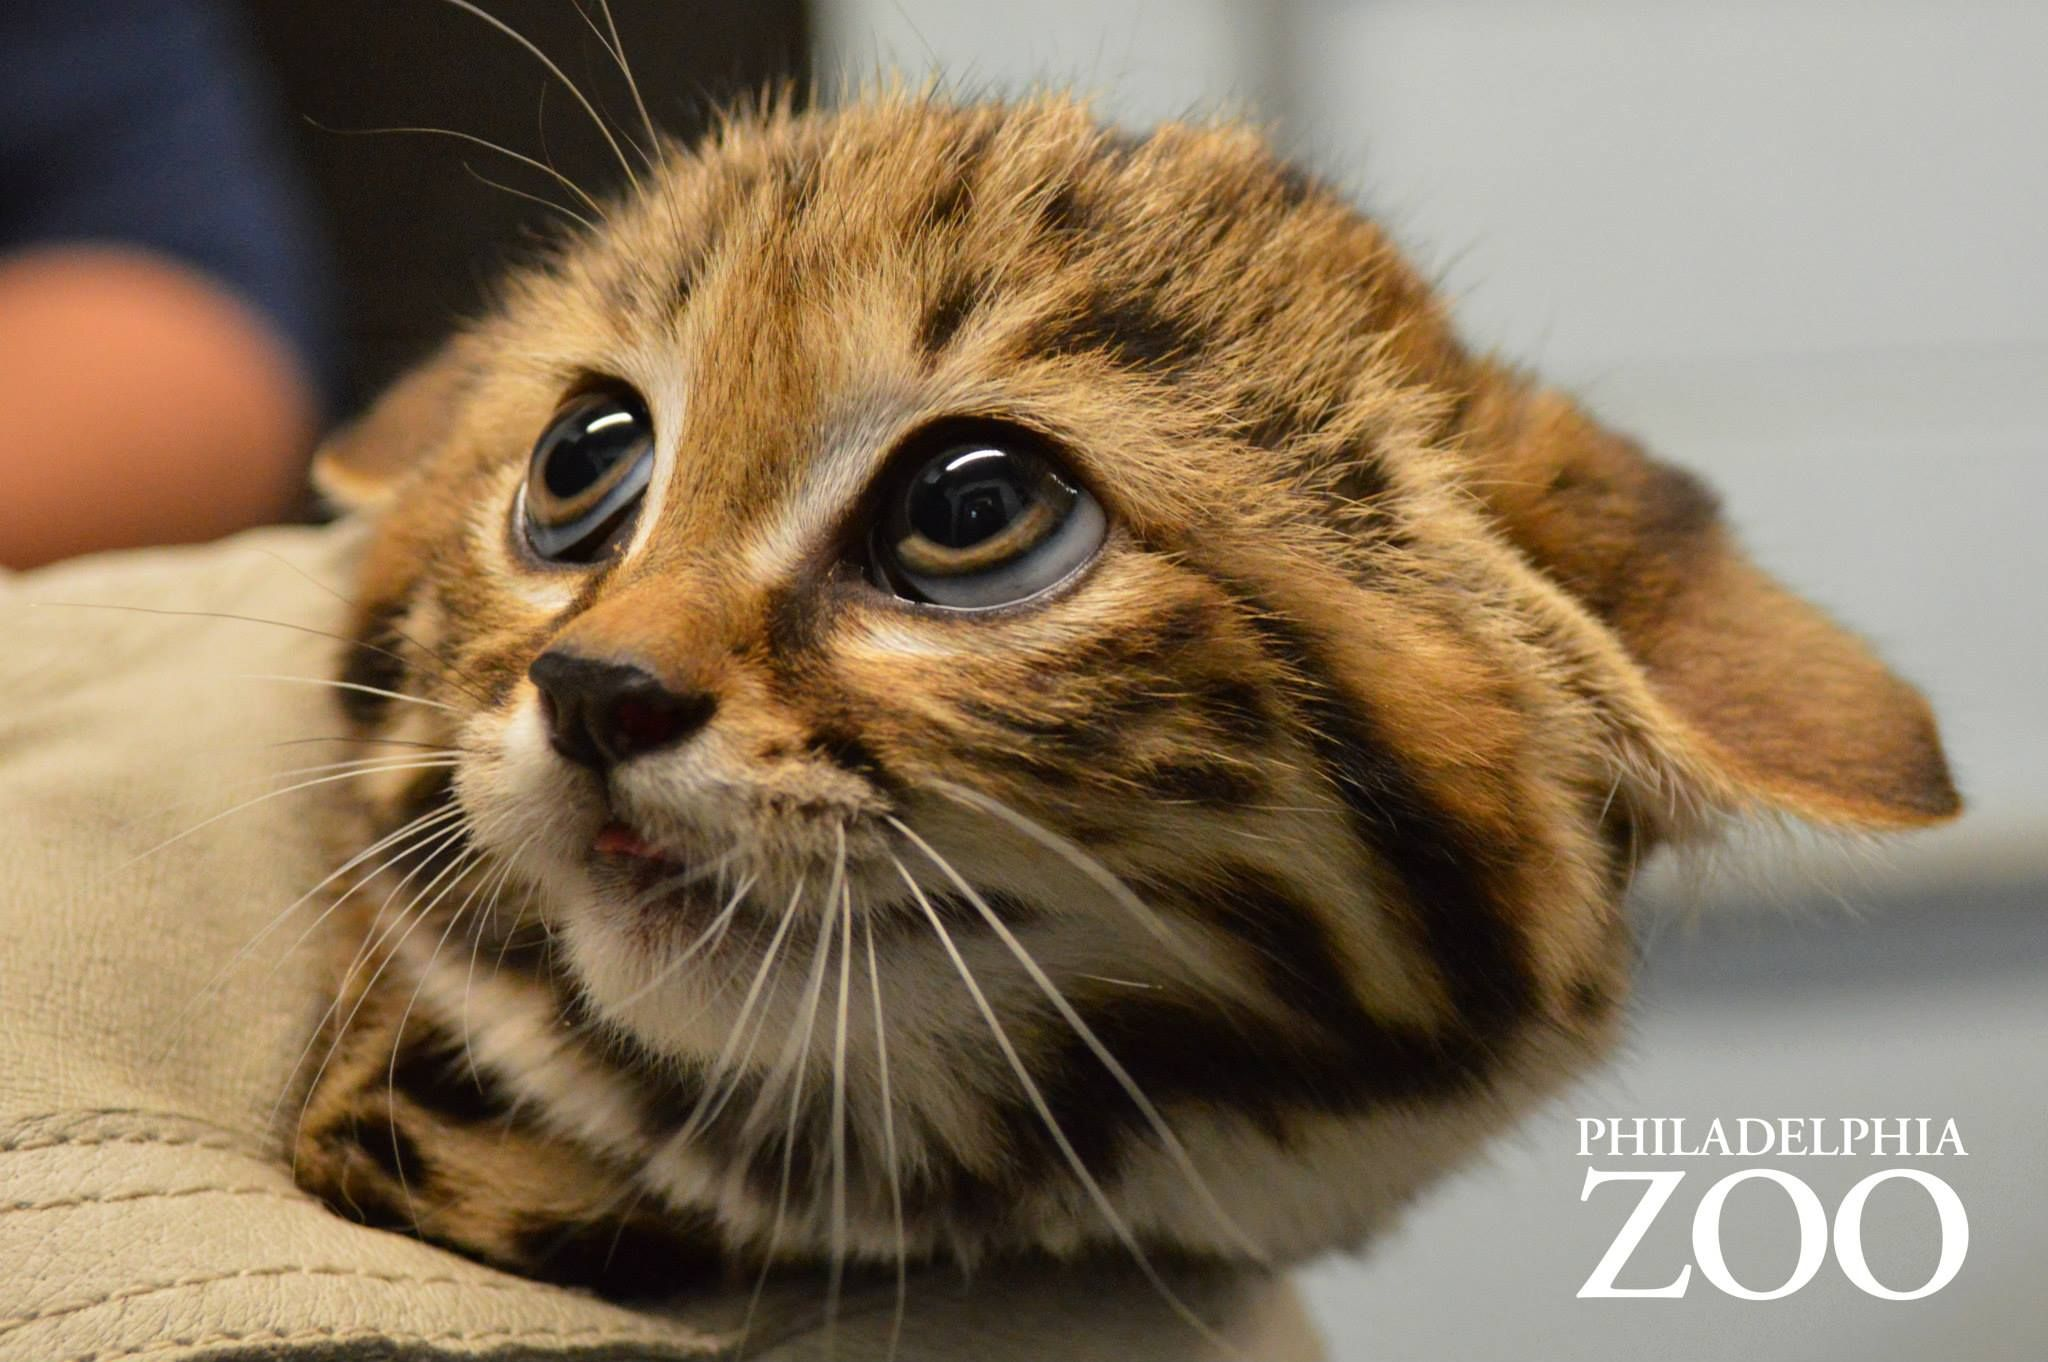 Philly Zoo S First Ever Black Footed Cat Kittens Are Thriving Black Footed Cat Wild Cat Species Cute Baby Animals